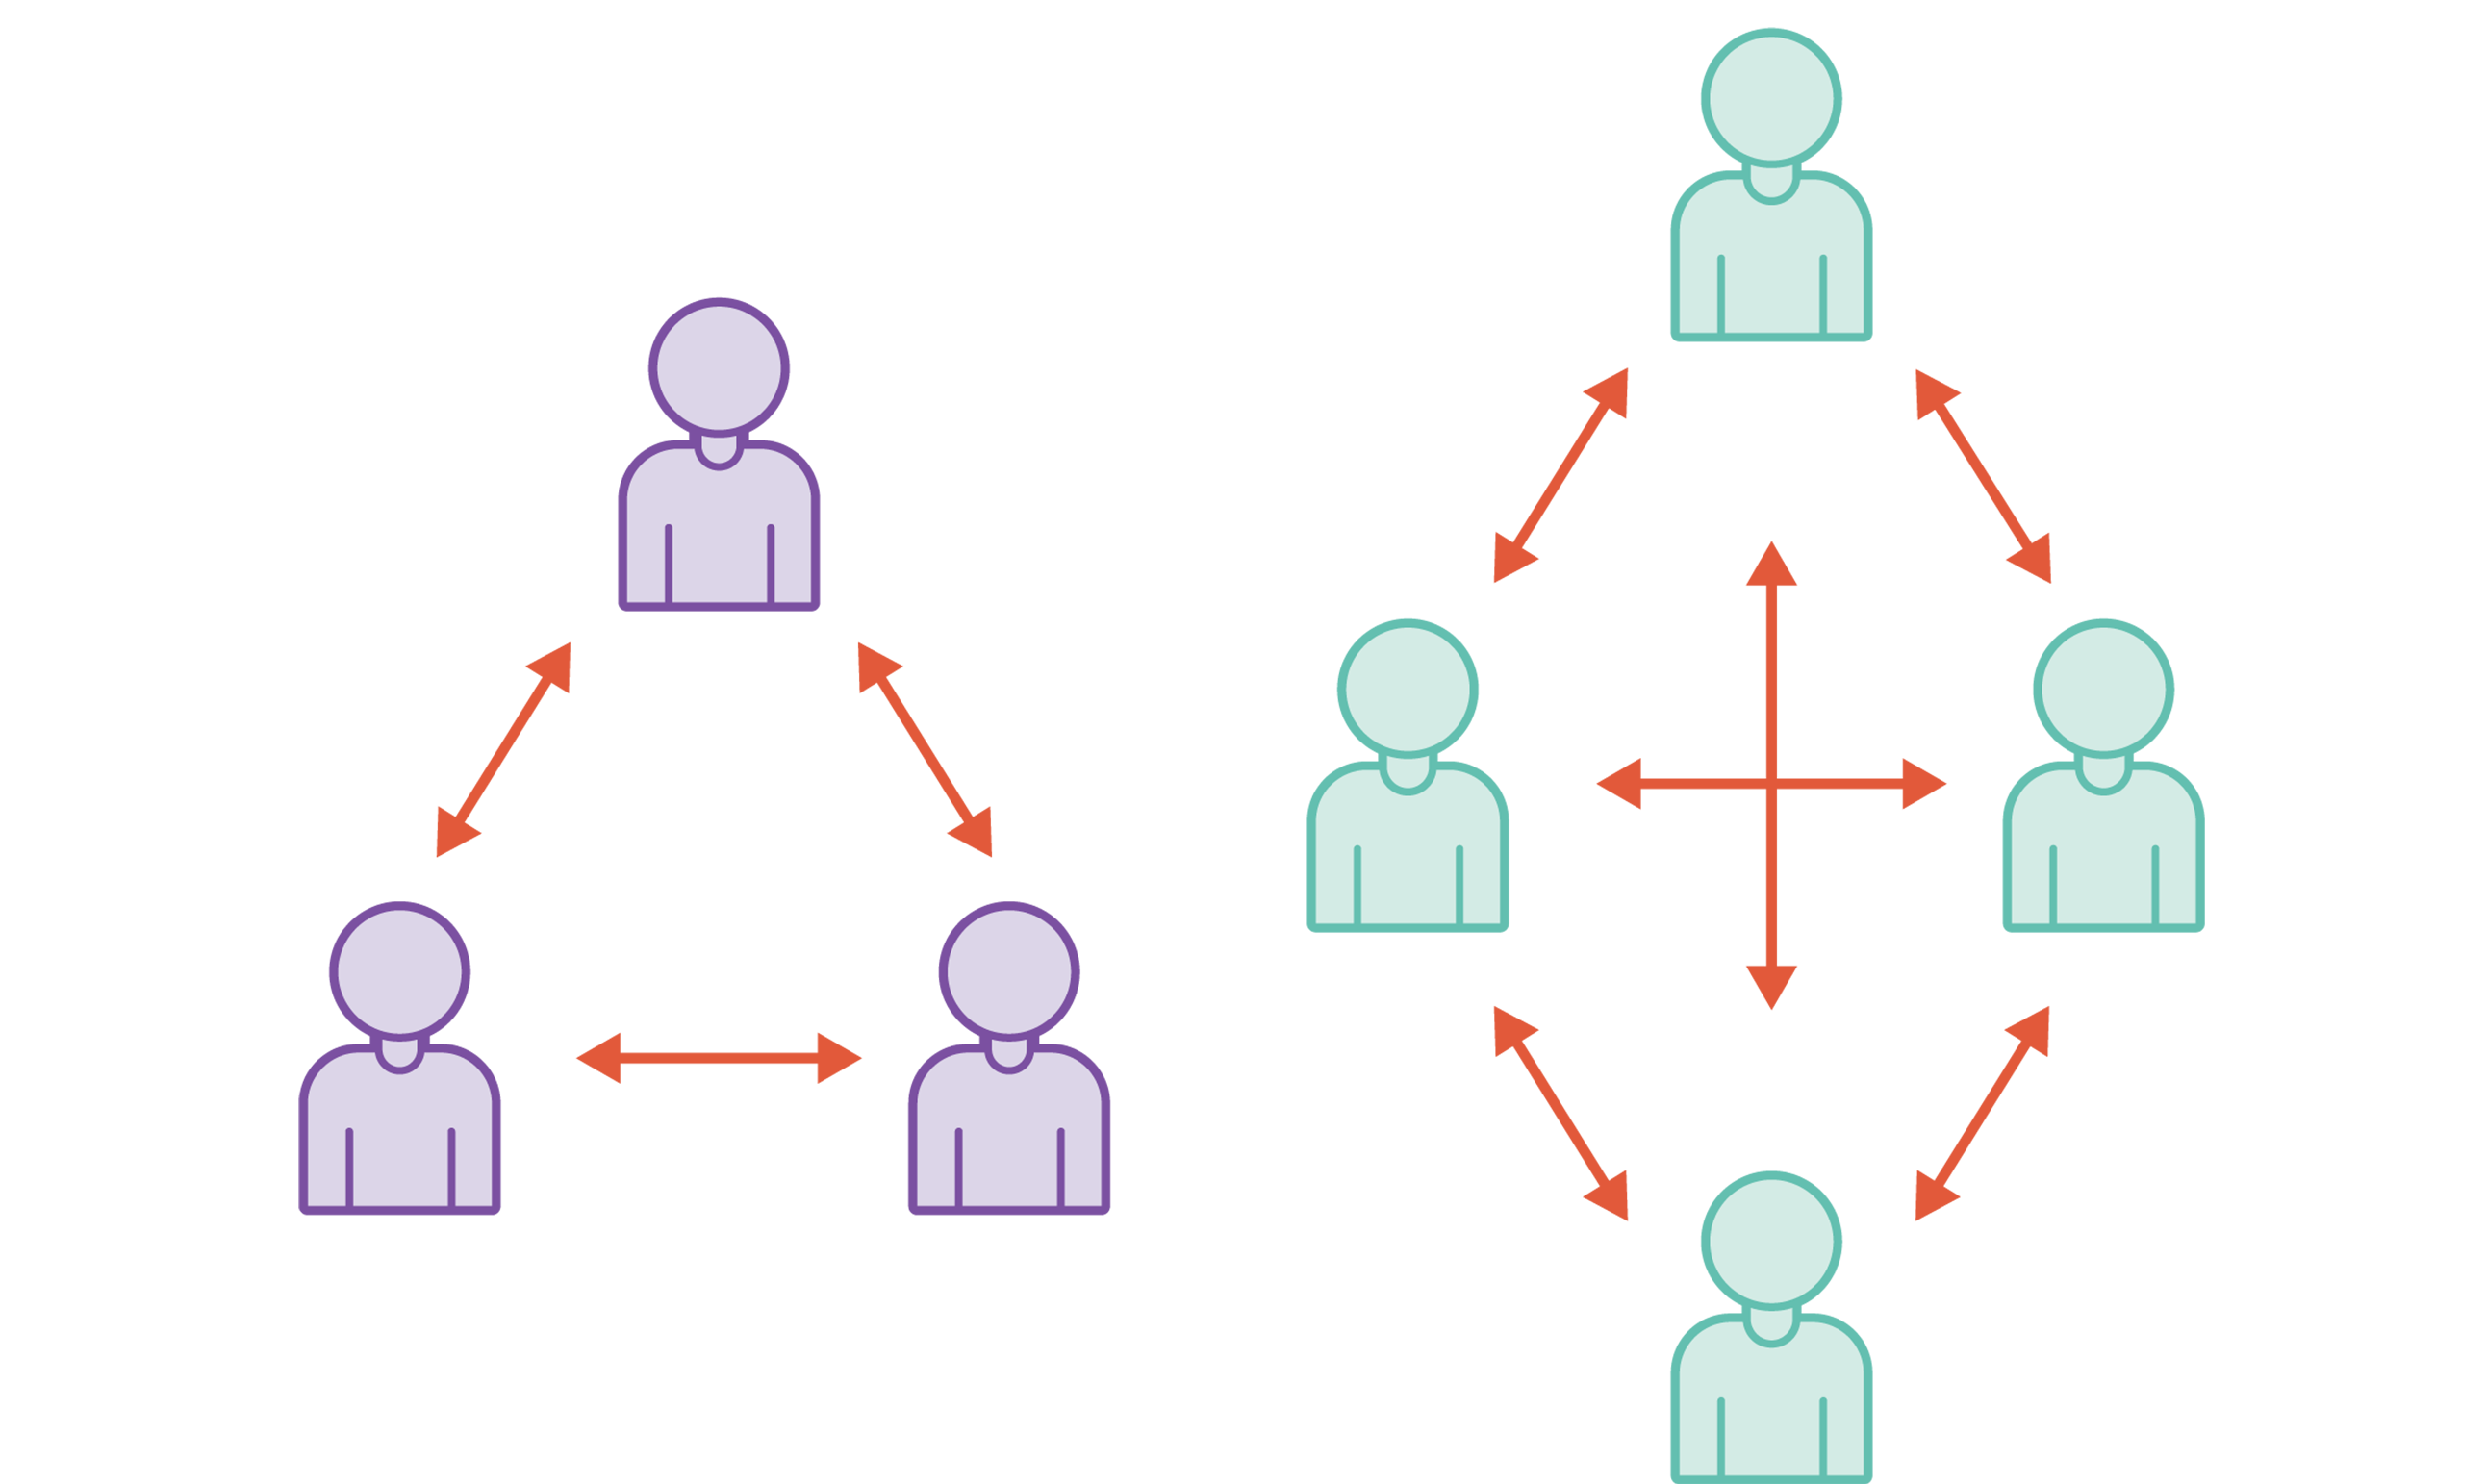 An illustration showing how communication changes as agile software development teams scale